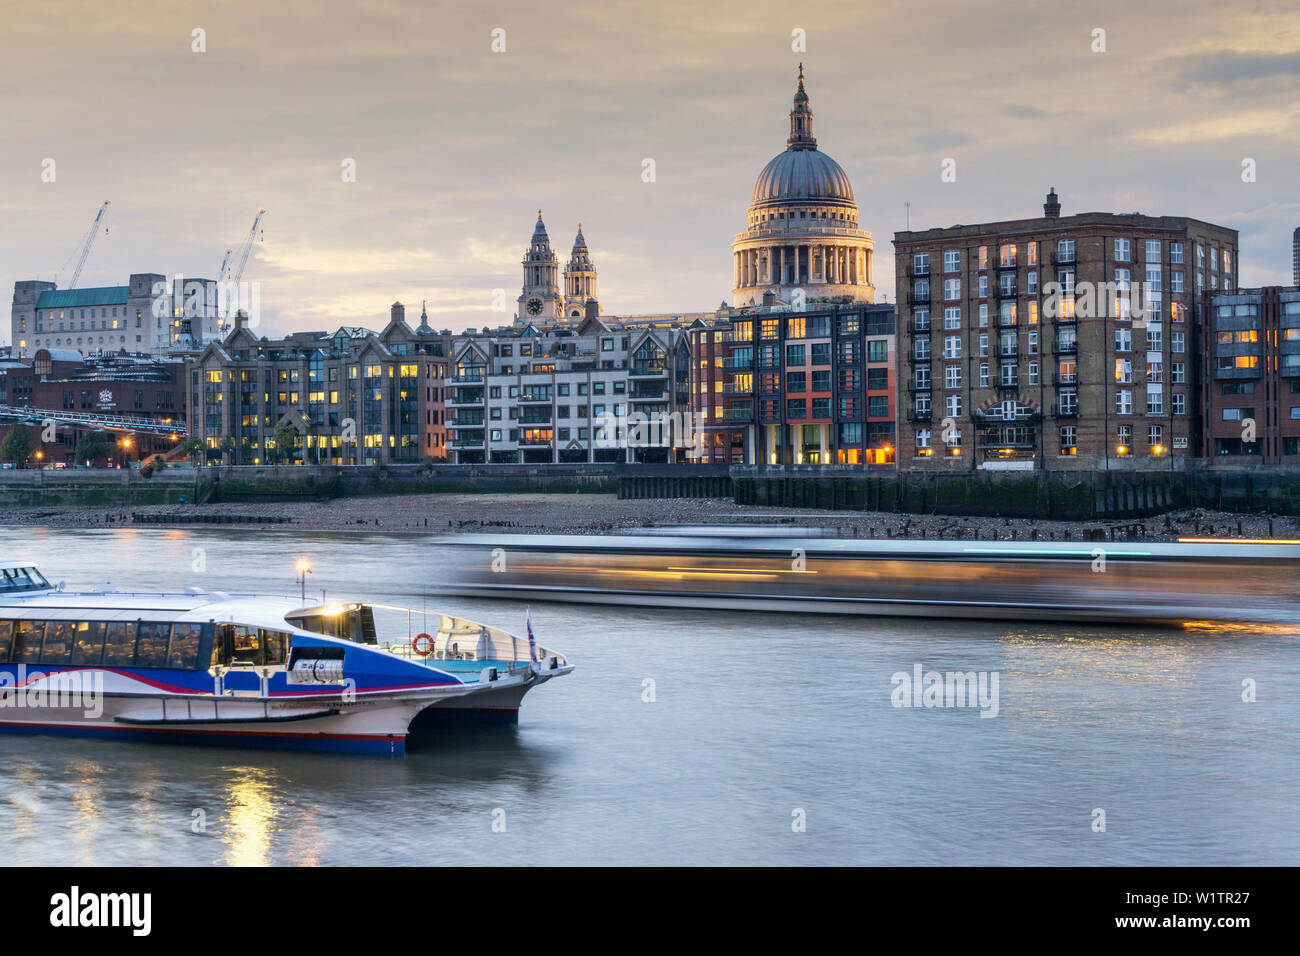 St Paul's Cathedral and City of London, river Thames, London England UK - Stock Image